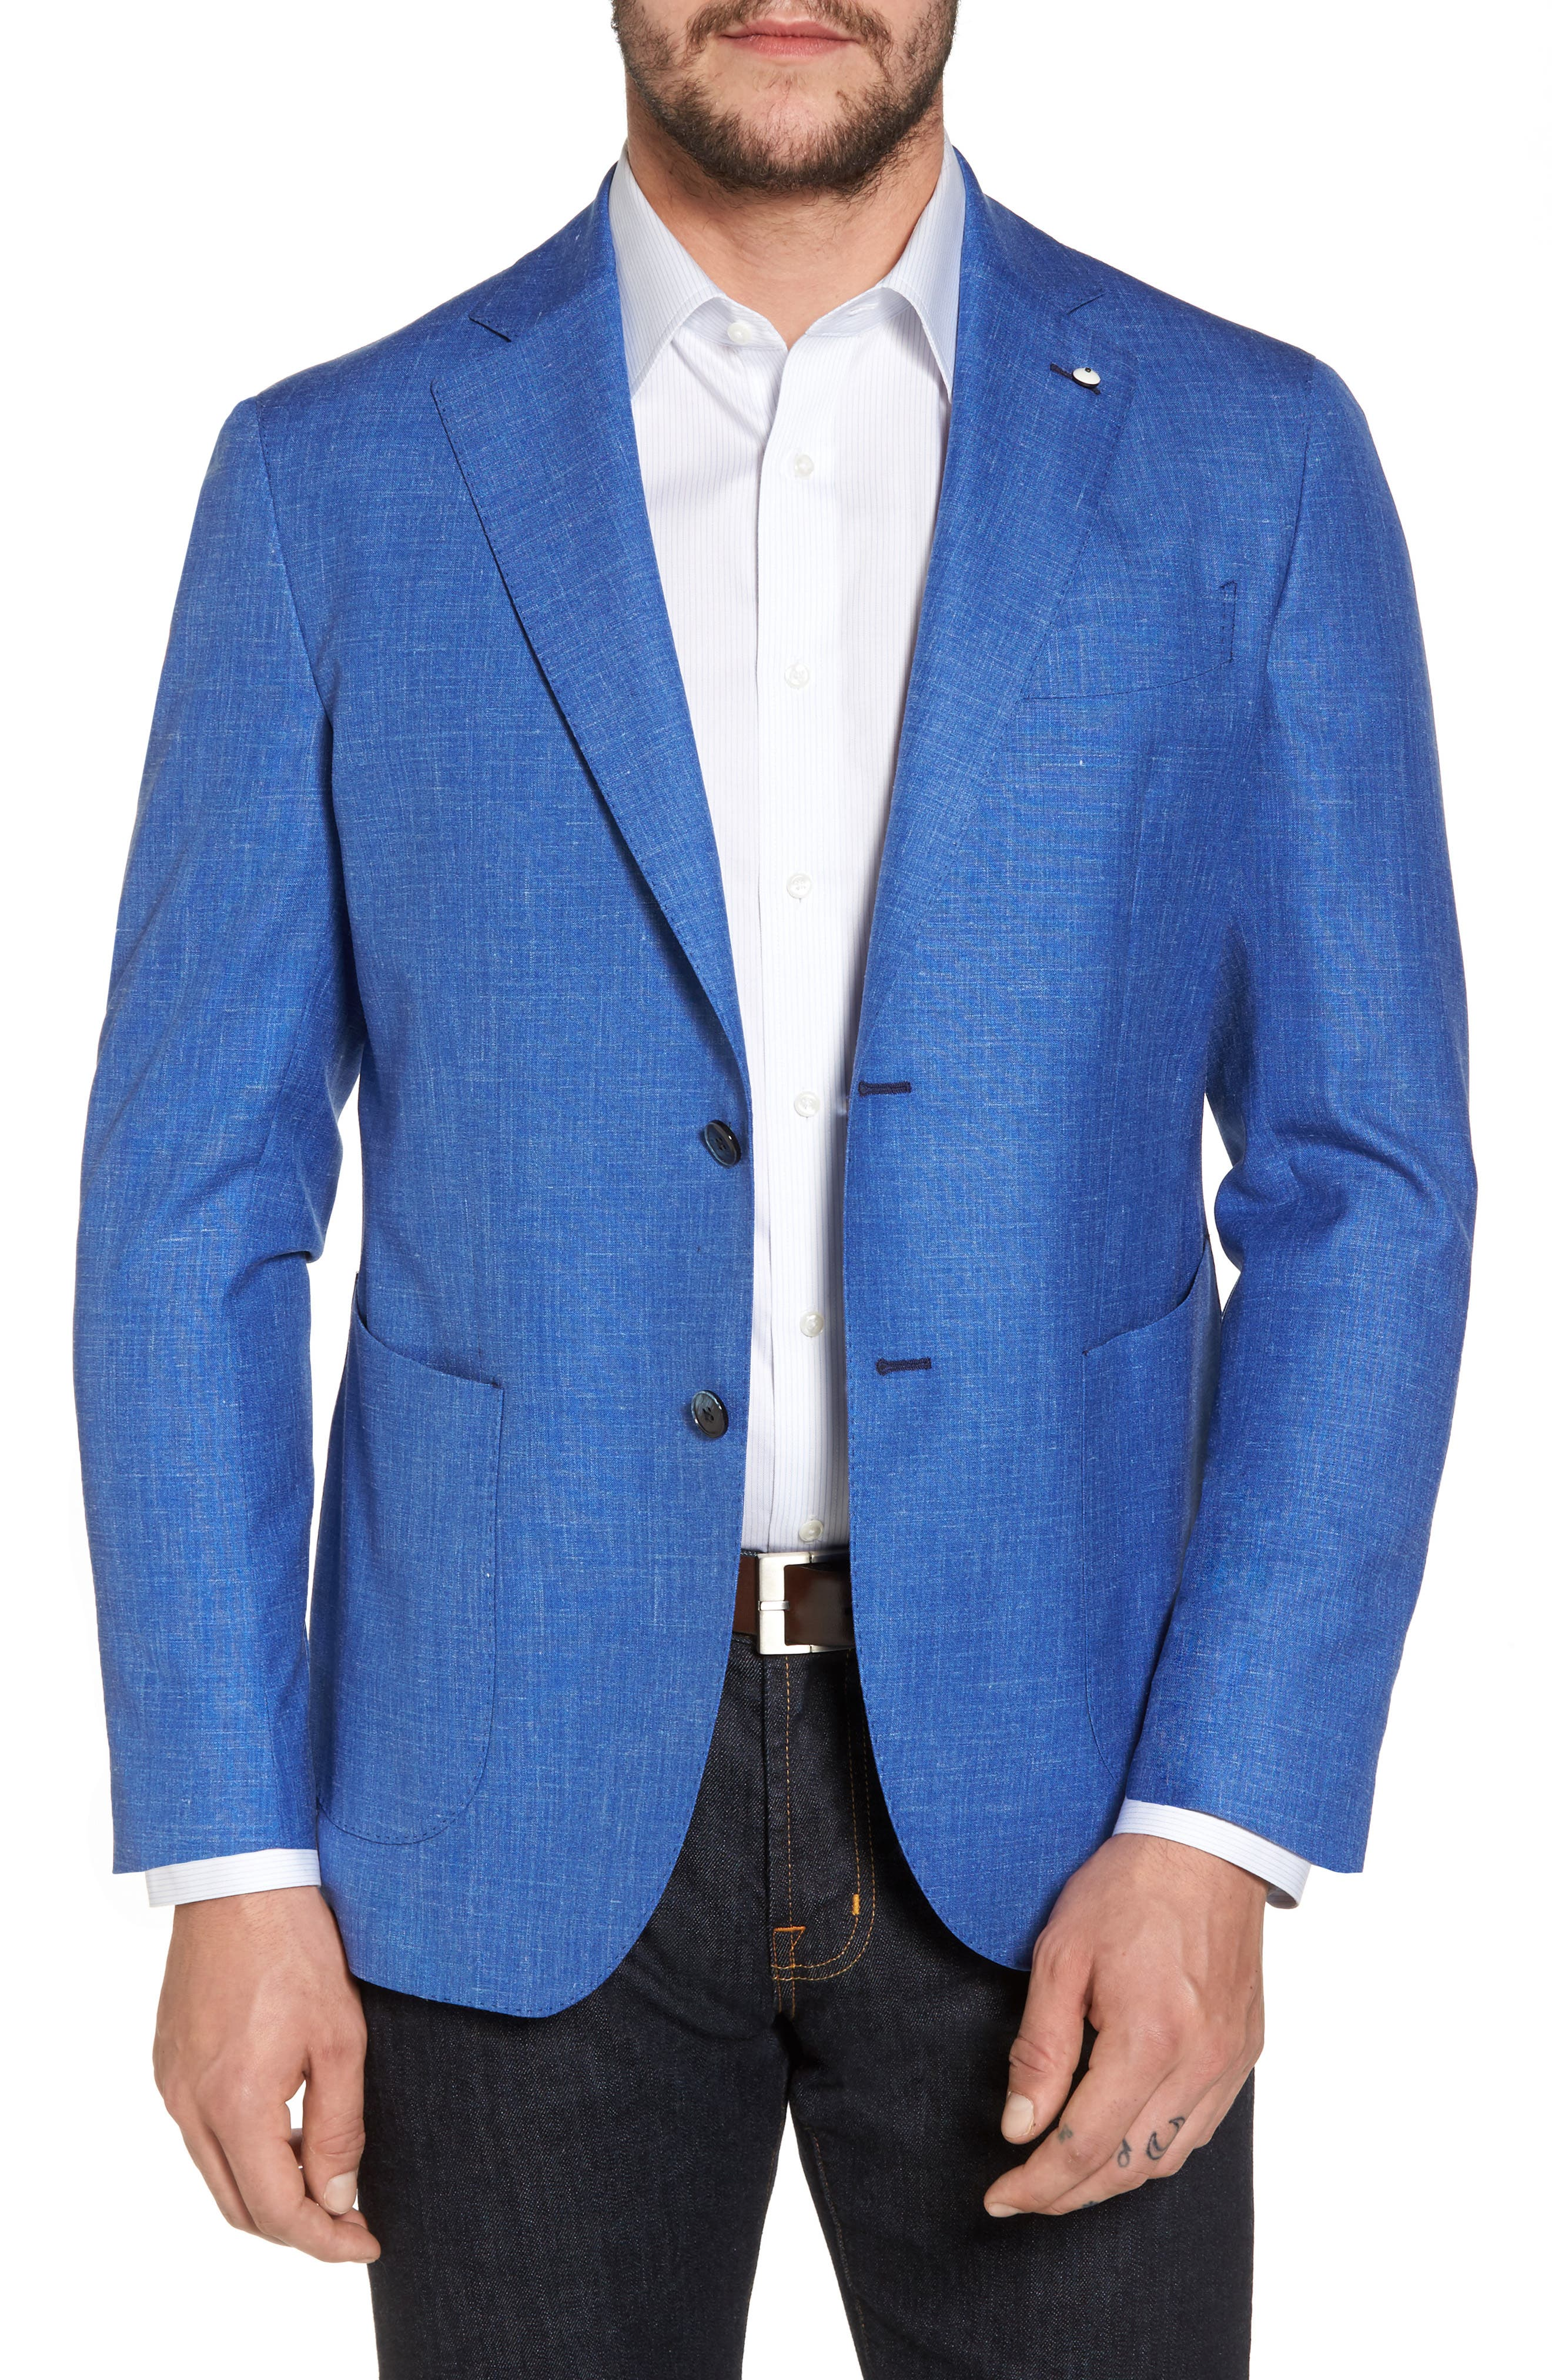 Classic Fit Wool Blend Blazer,                             Main thumbnail 1, color,                             Navy